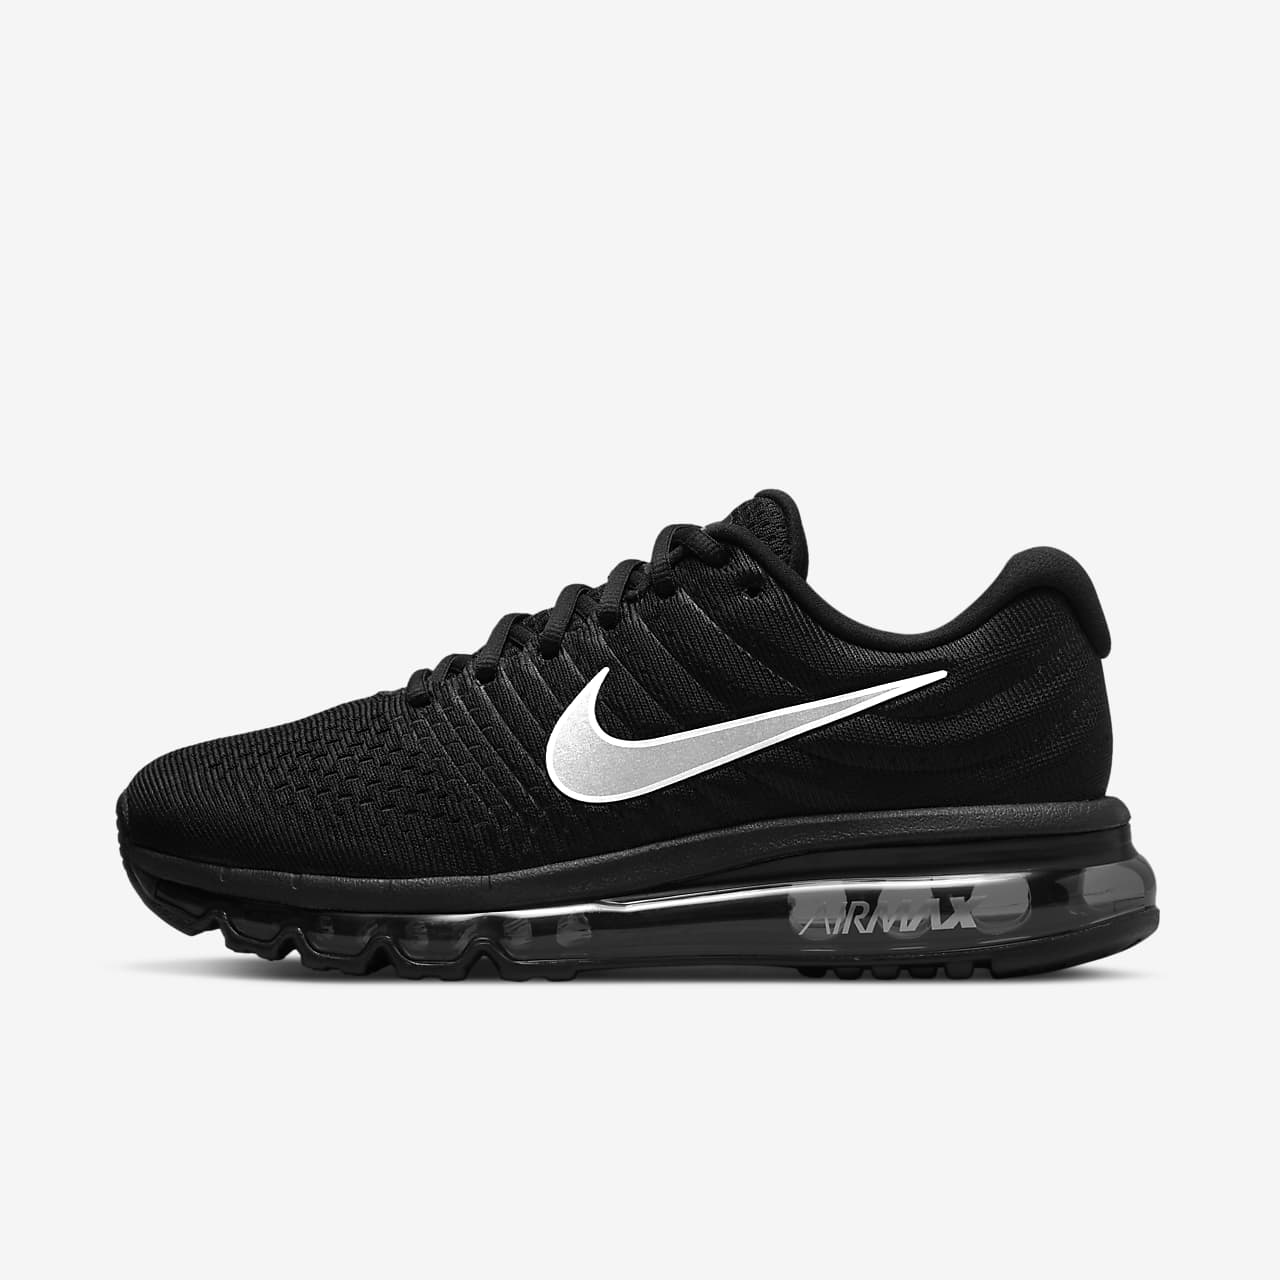 low priced 58ba5 32a91 ... Chaussure Nike Air Max 2017 pour Femme